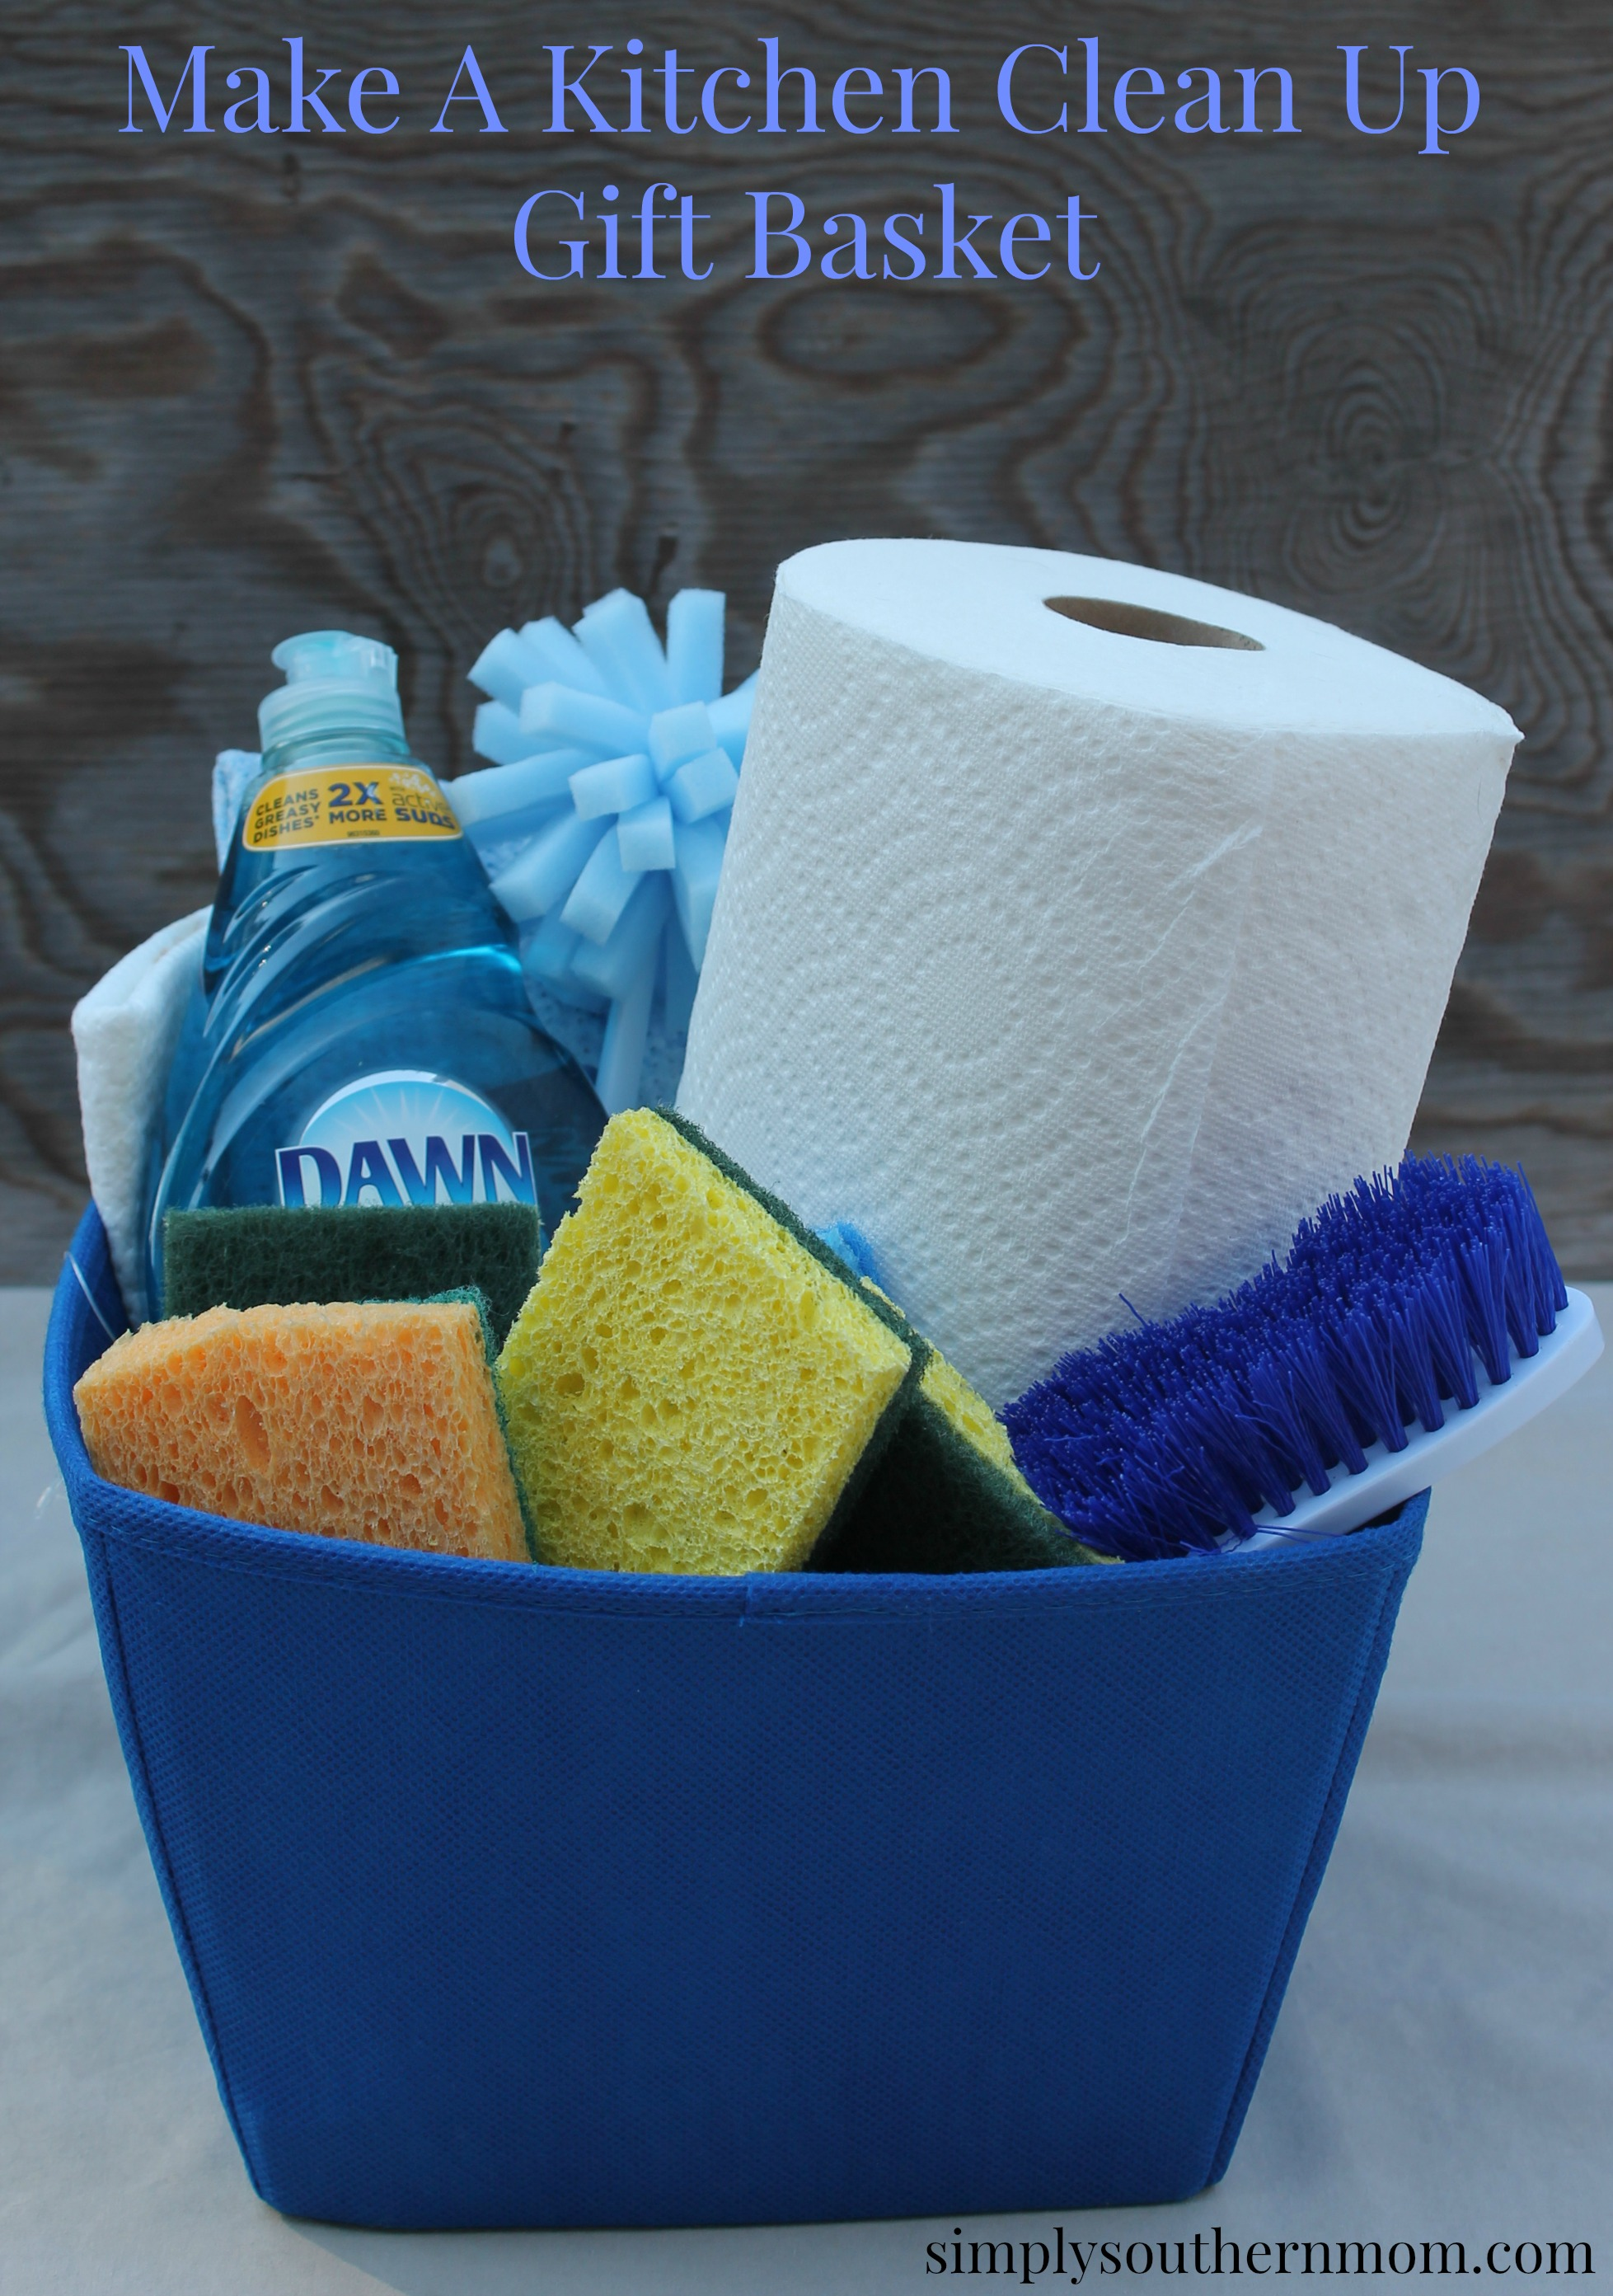 Make A Kitchen Cleaning Gift Basket Simply Southern Mom